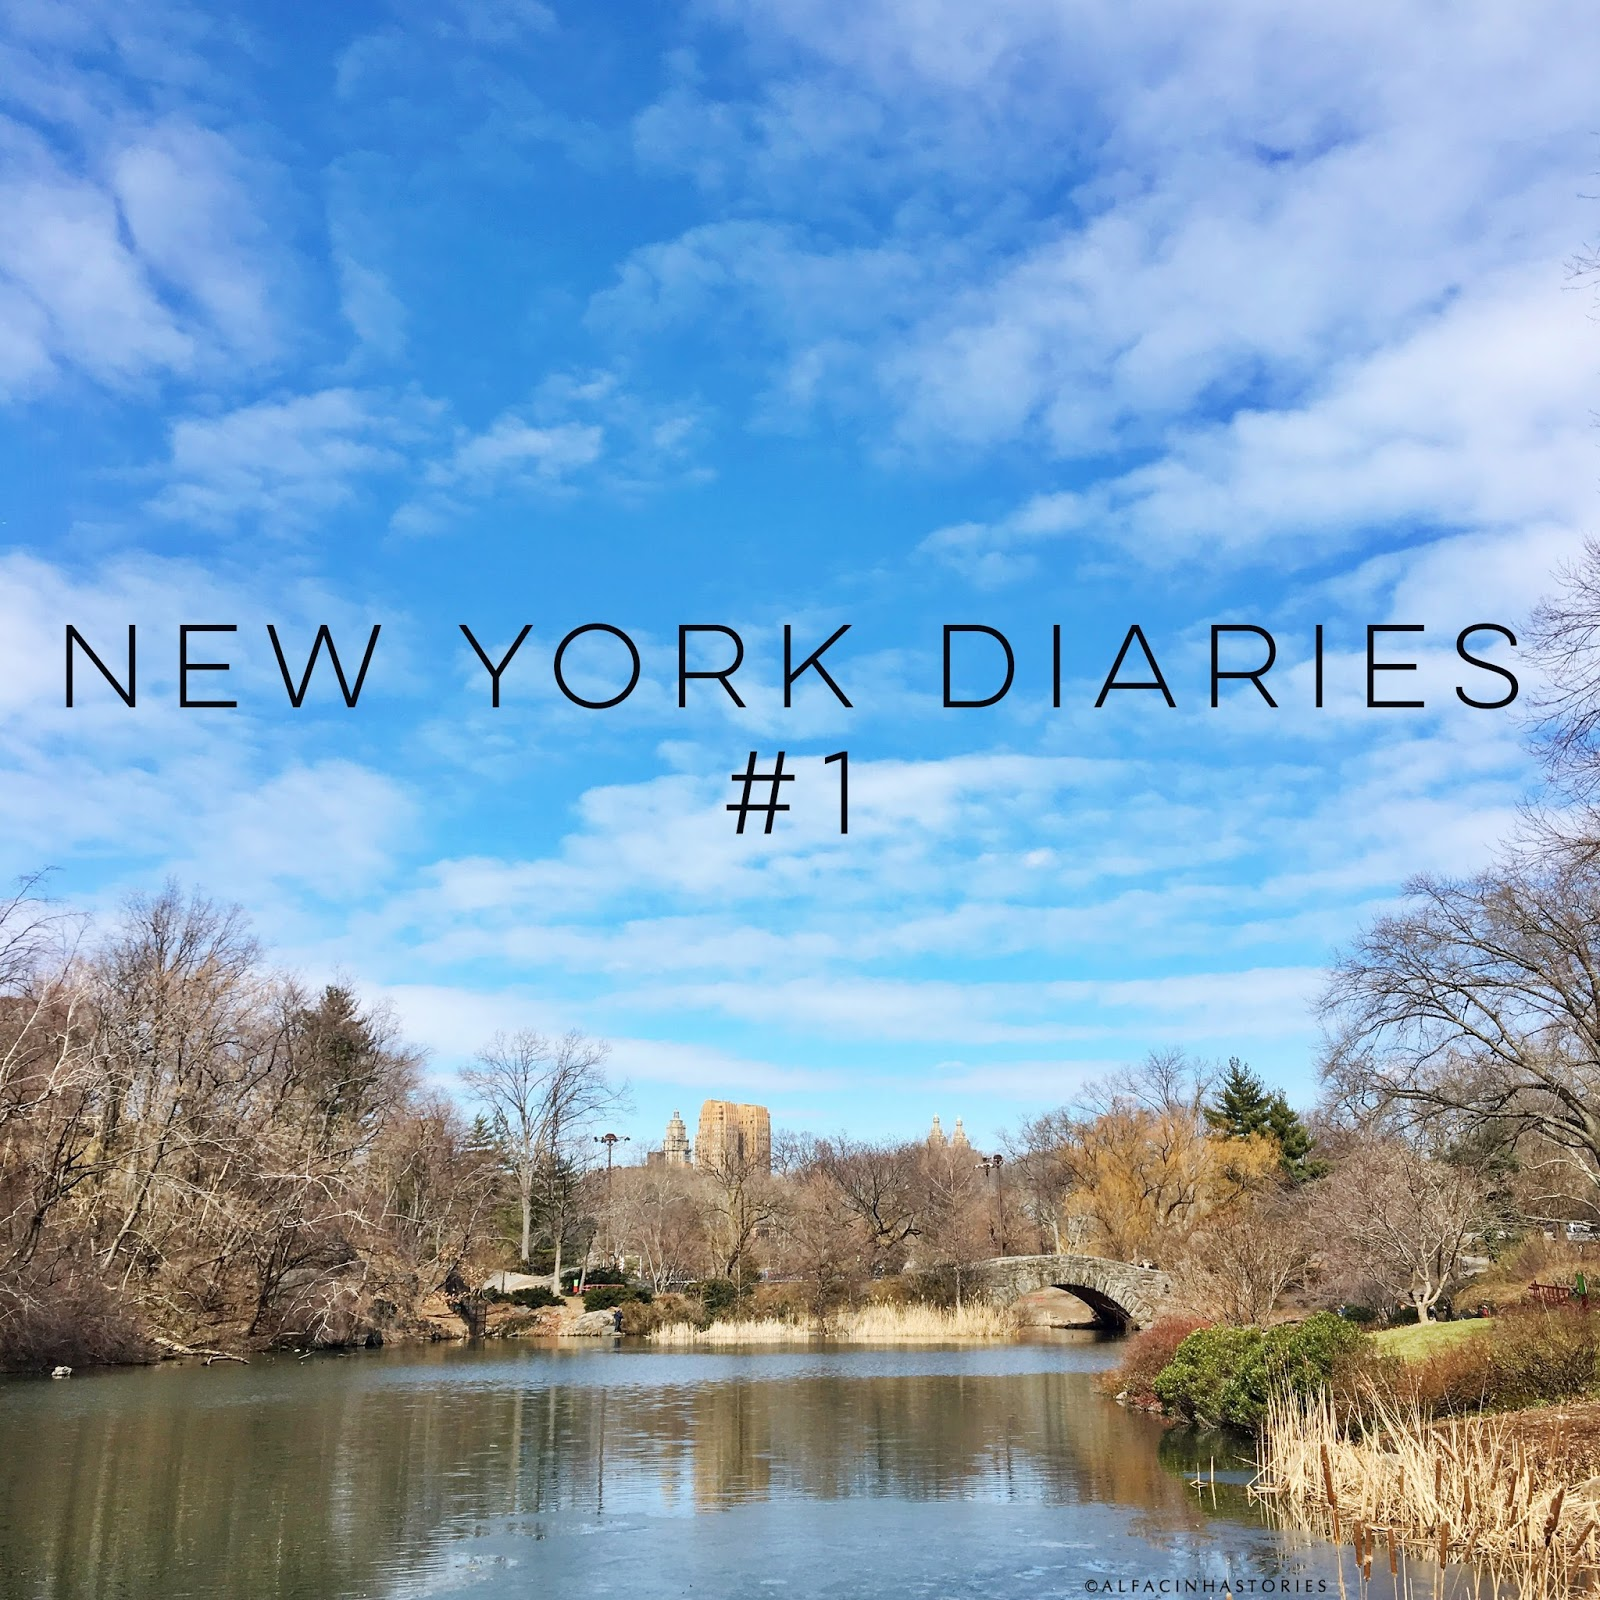 The New York Diaries #1